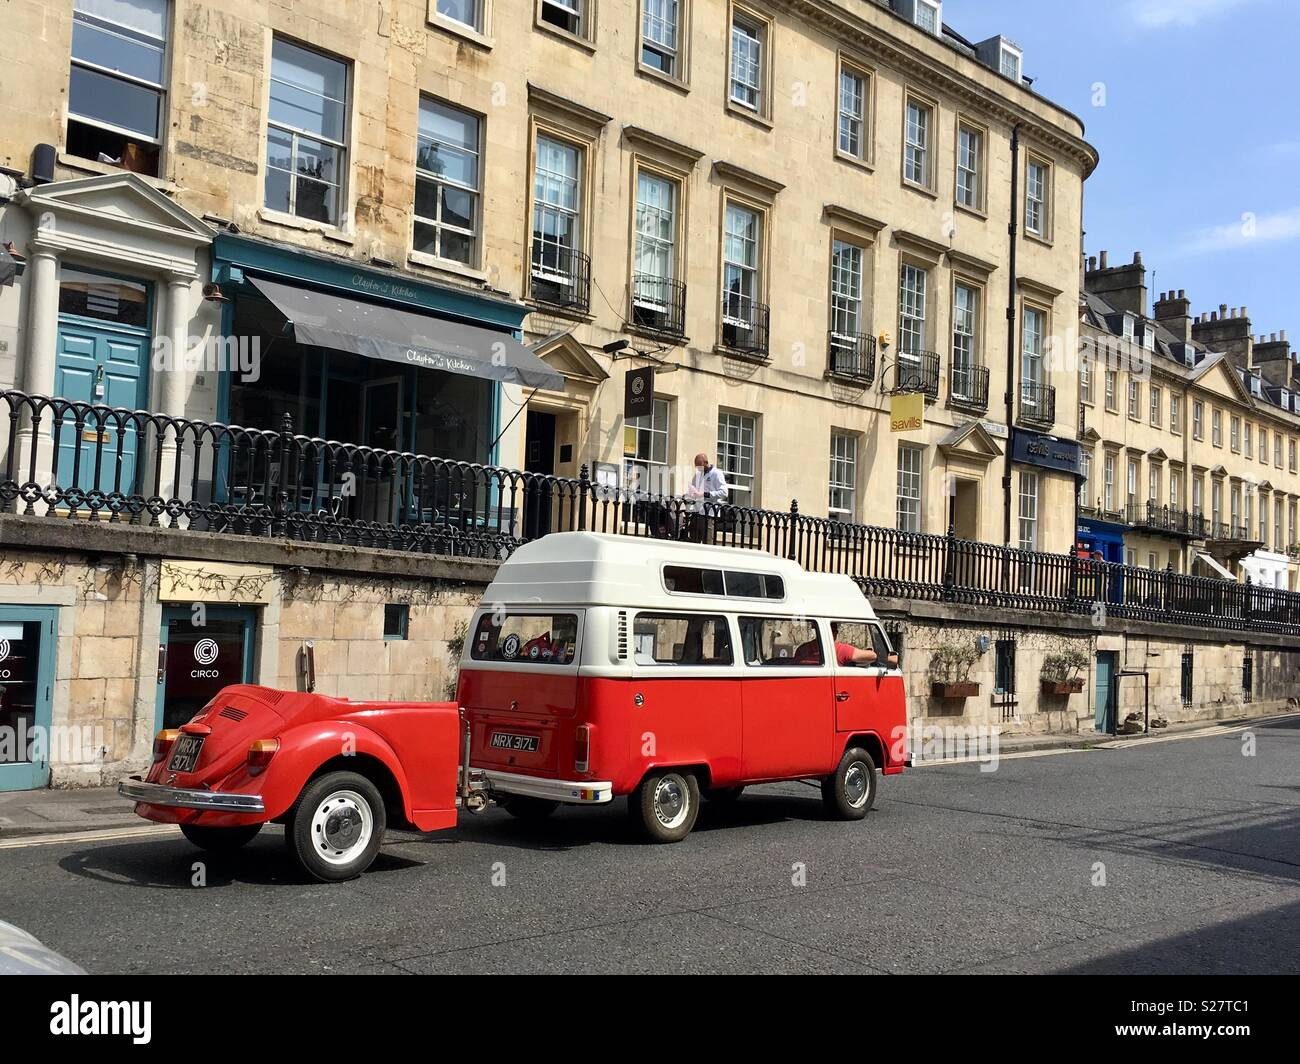 A Volkswagen camper van towing a VW bug on a street in Bath, England UK - Stock Image